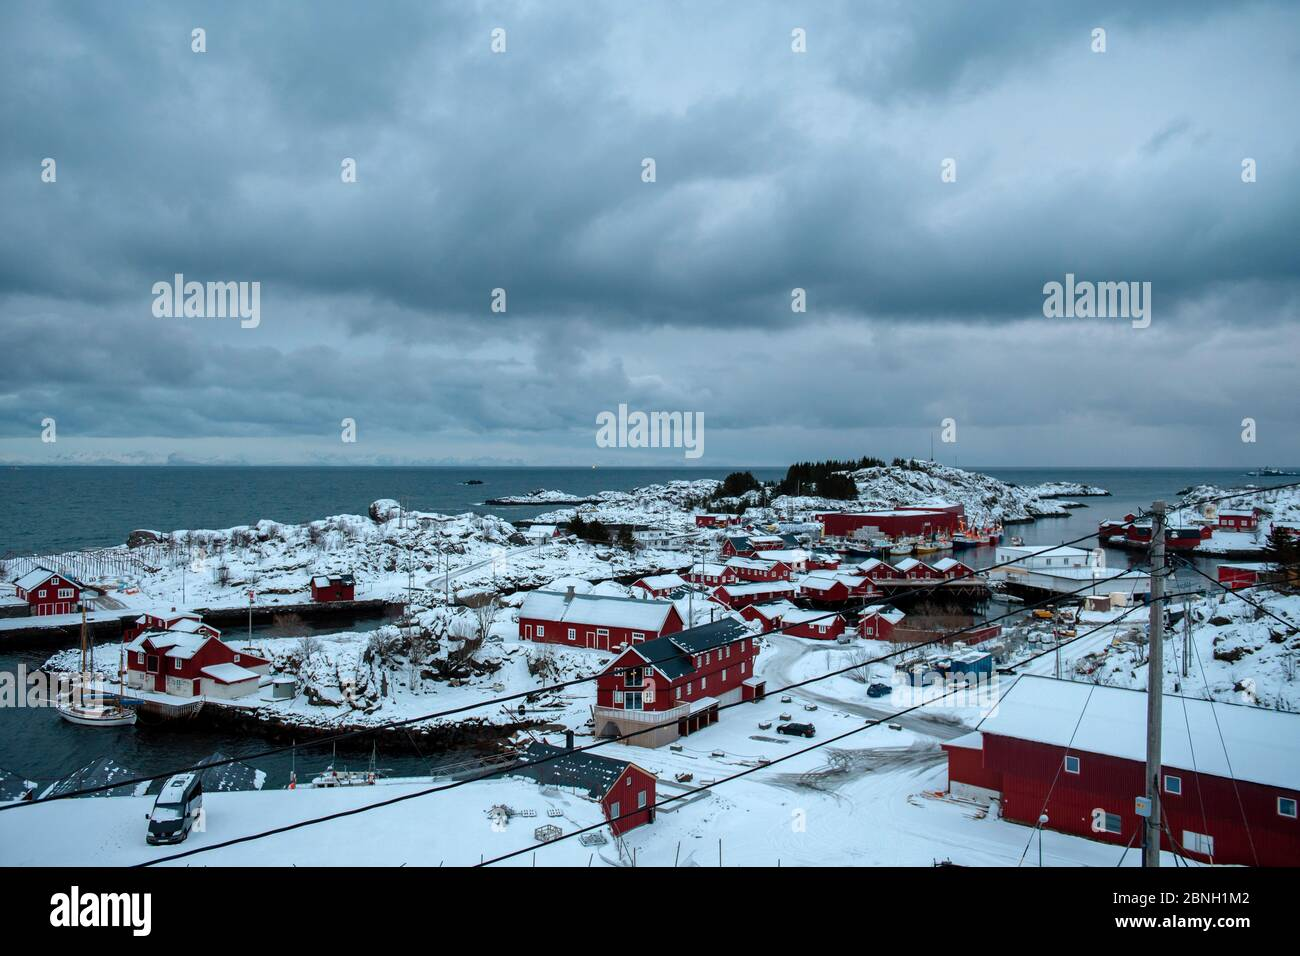 Winter day with cloudy blue sky in small village. Lofoten islands, Norway Stock Photo